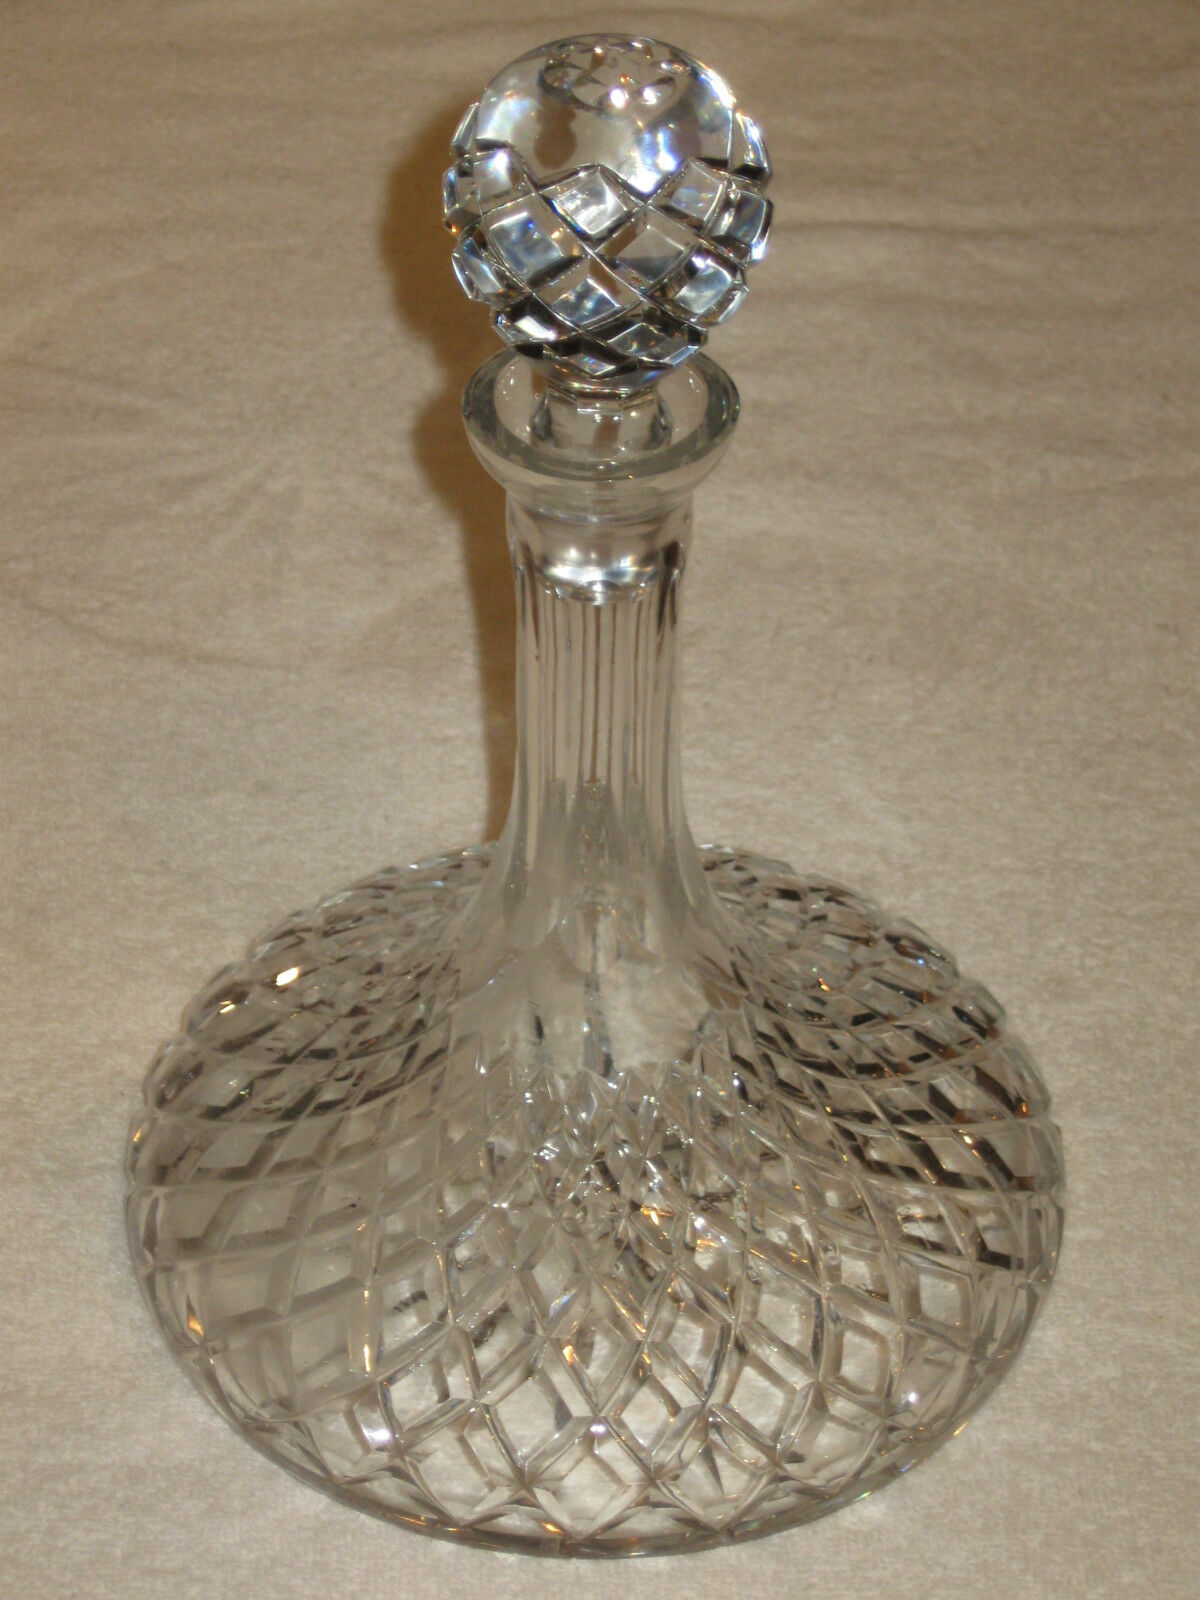 how to clean a cloudy crystal decanter